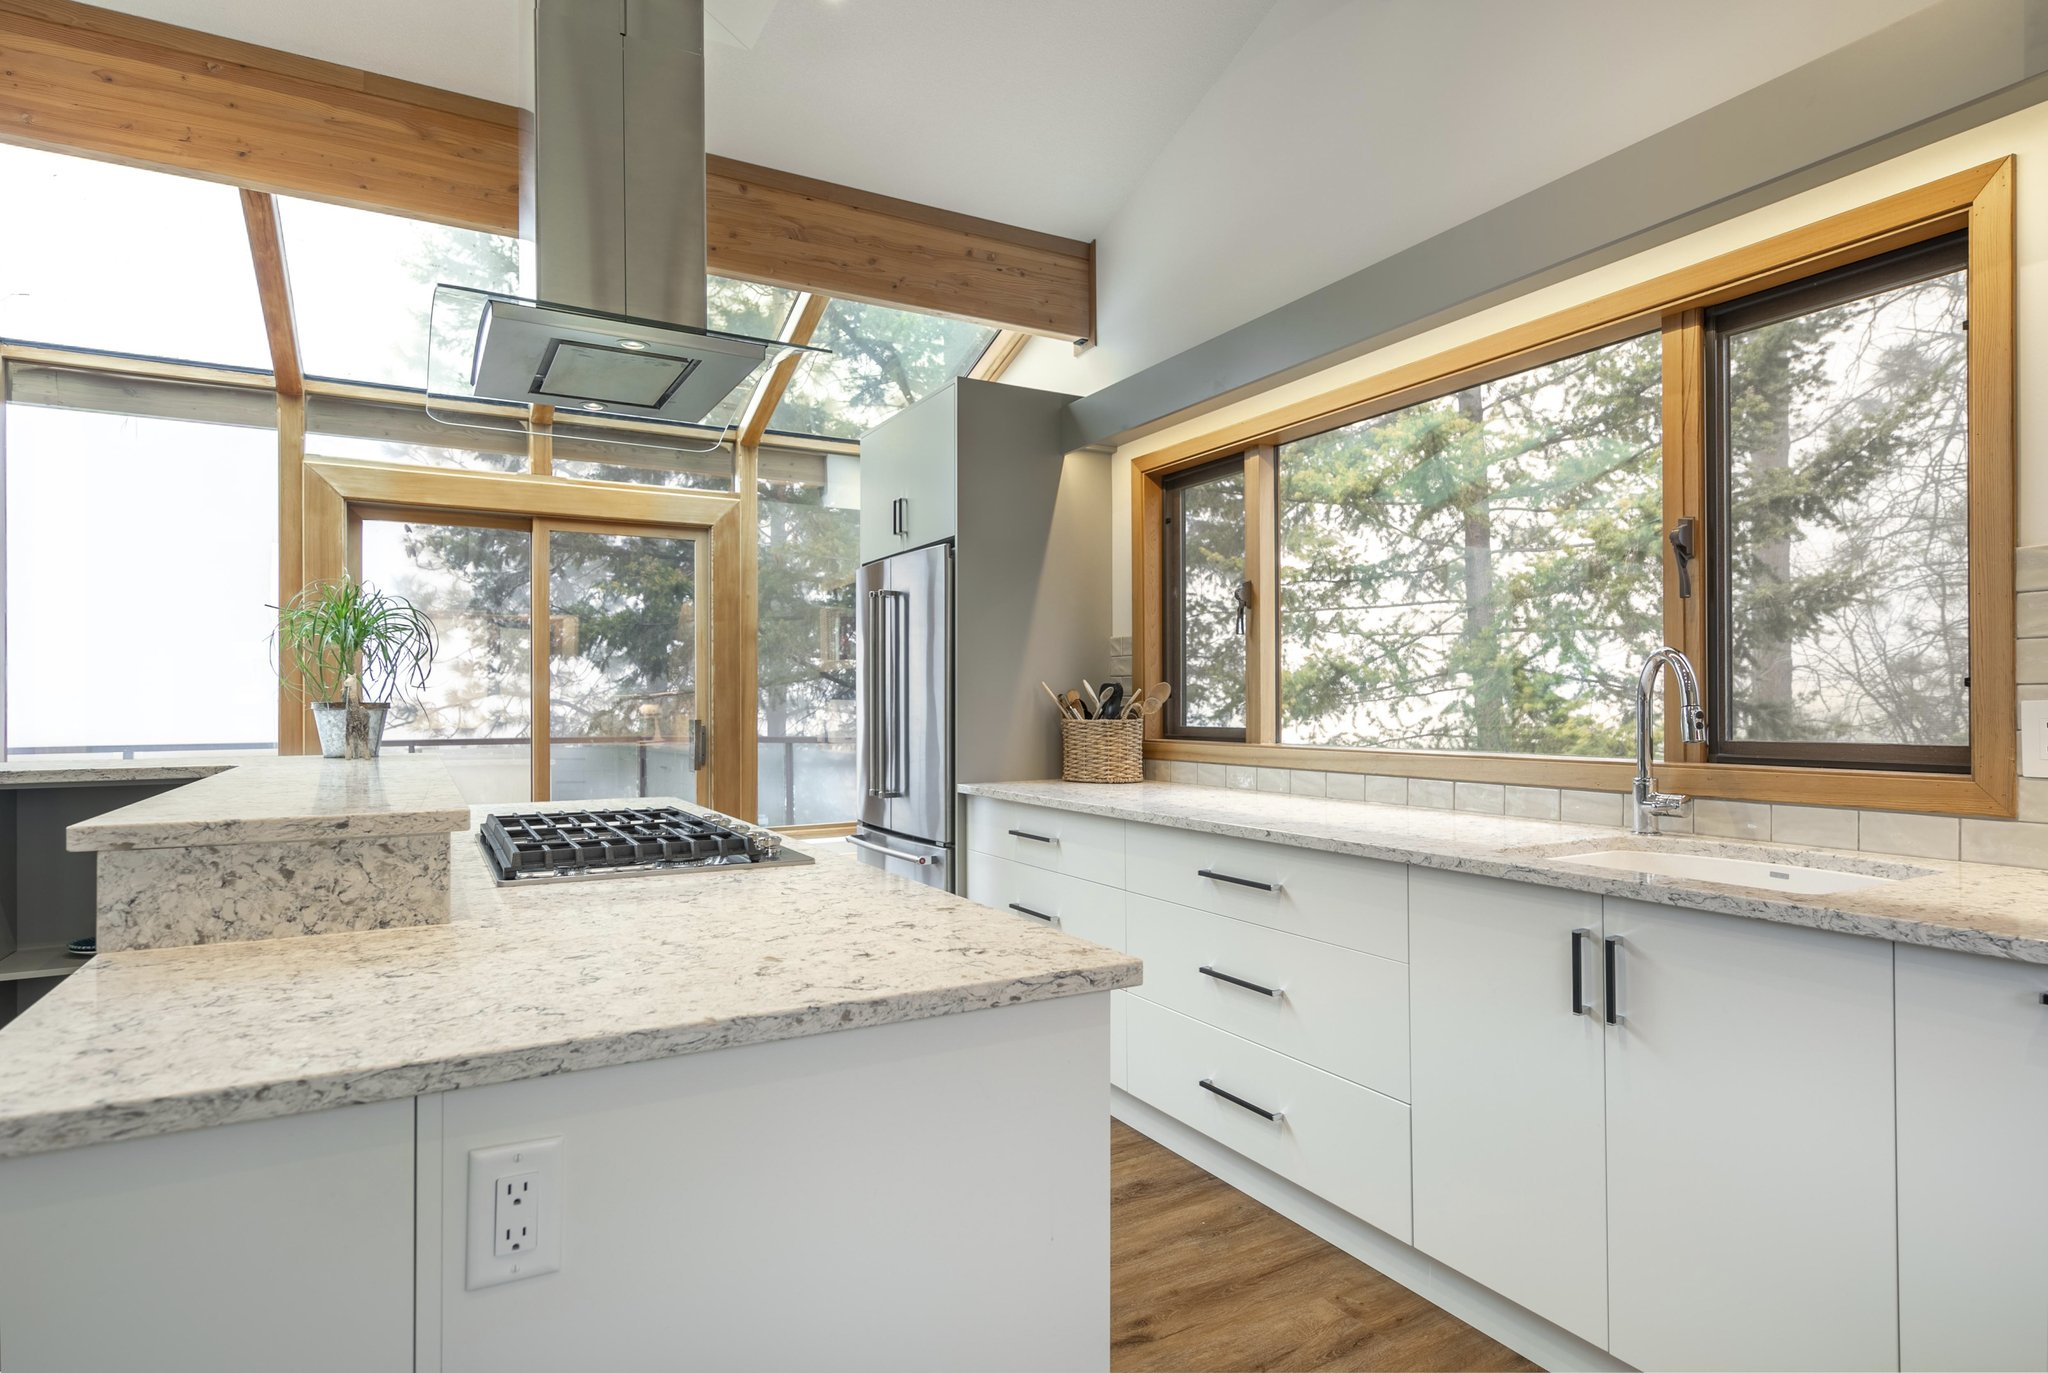 Kitchen all white cabinetry and large windows all over